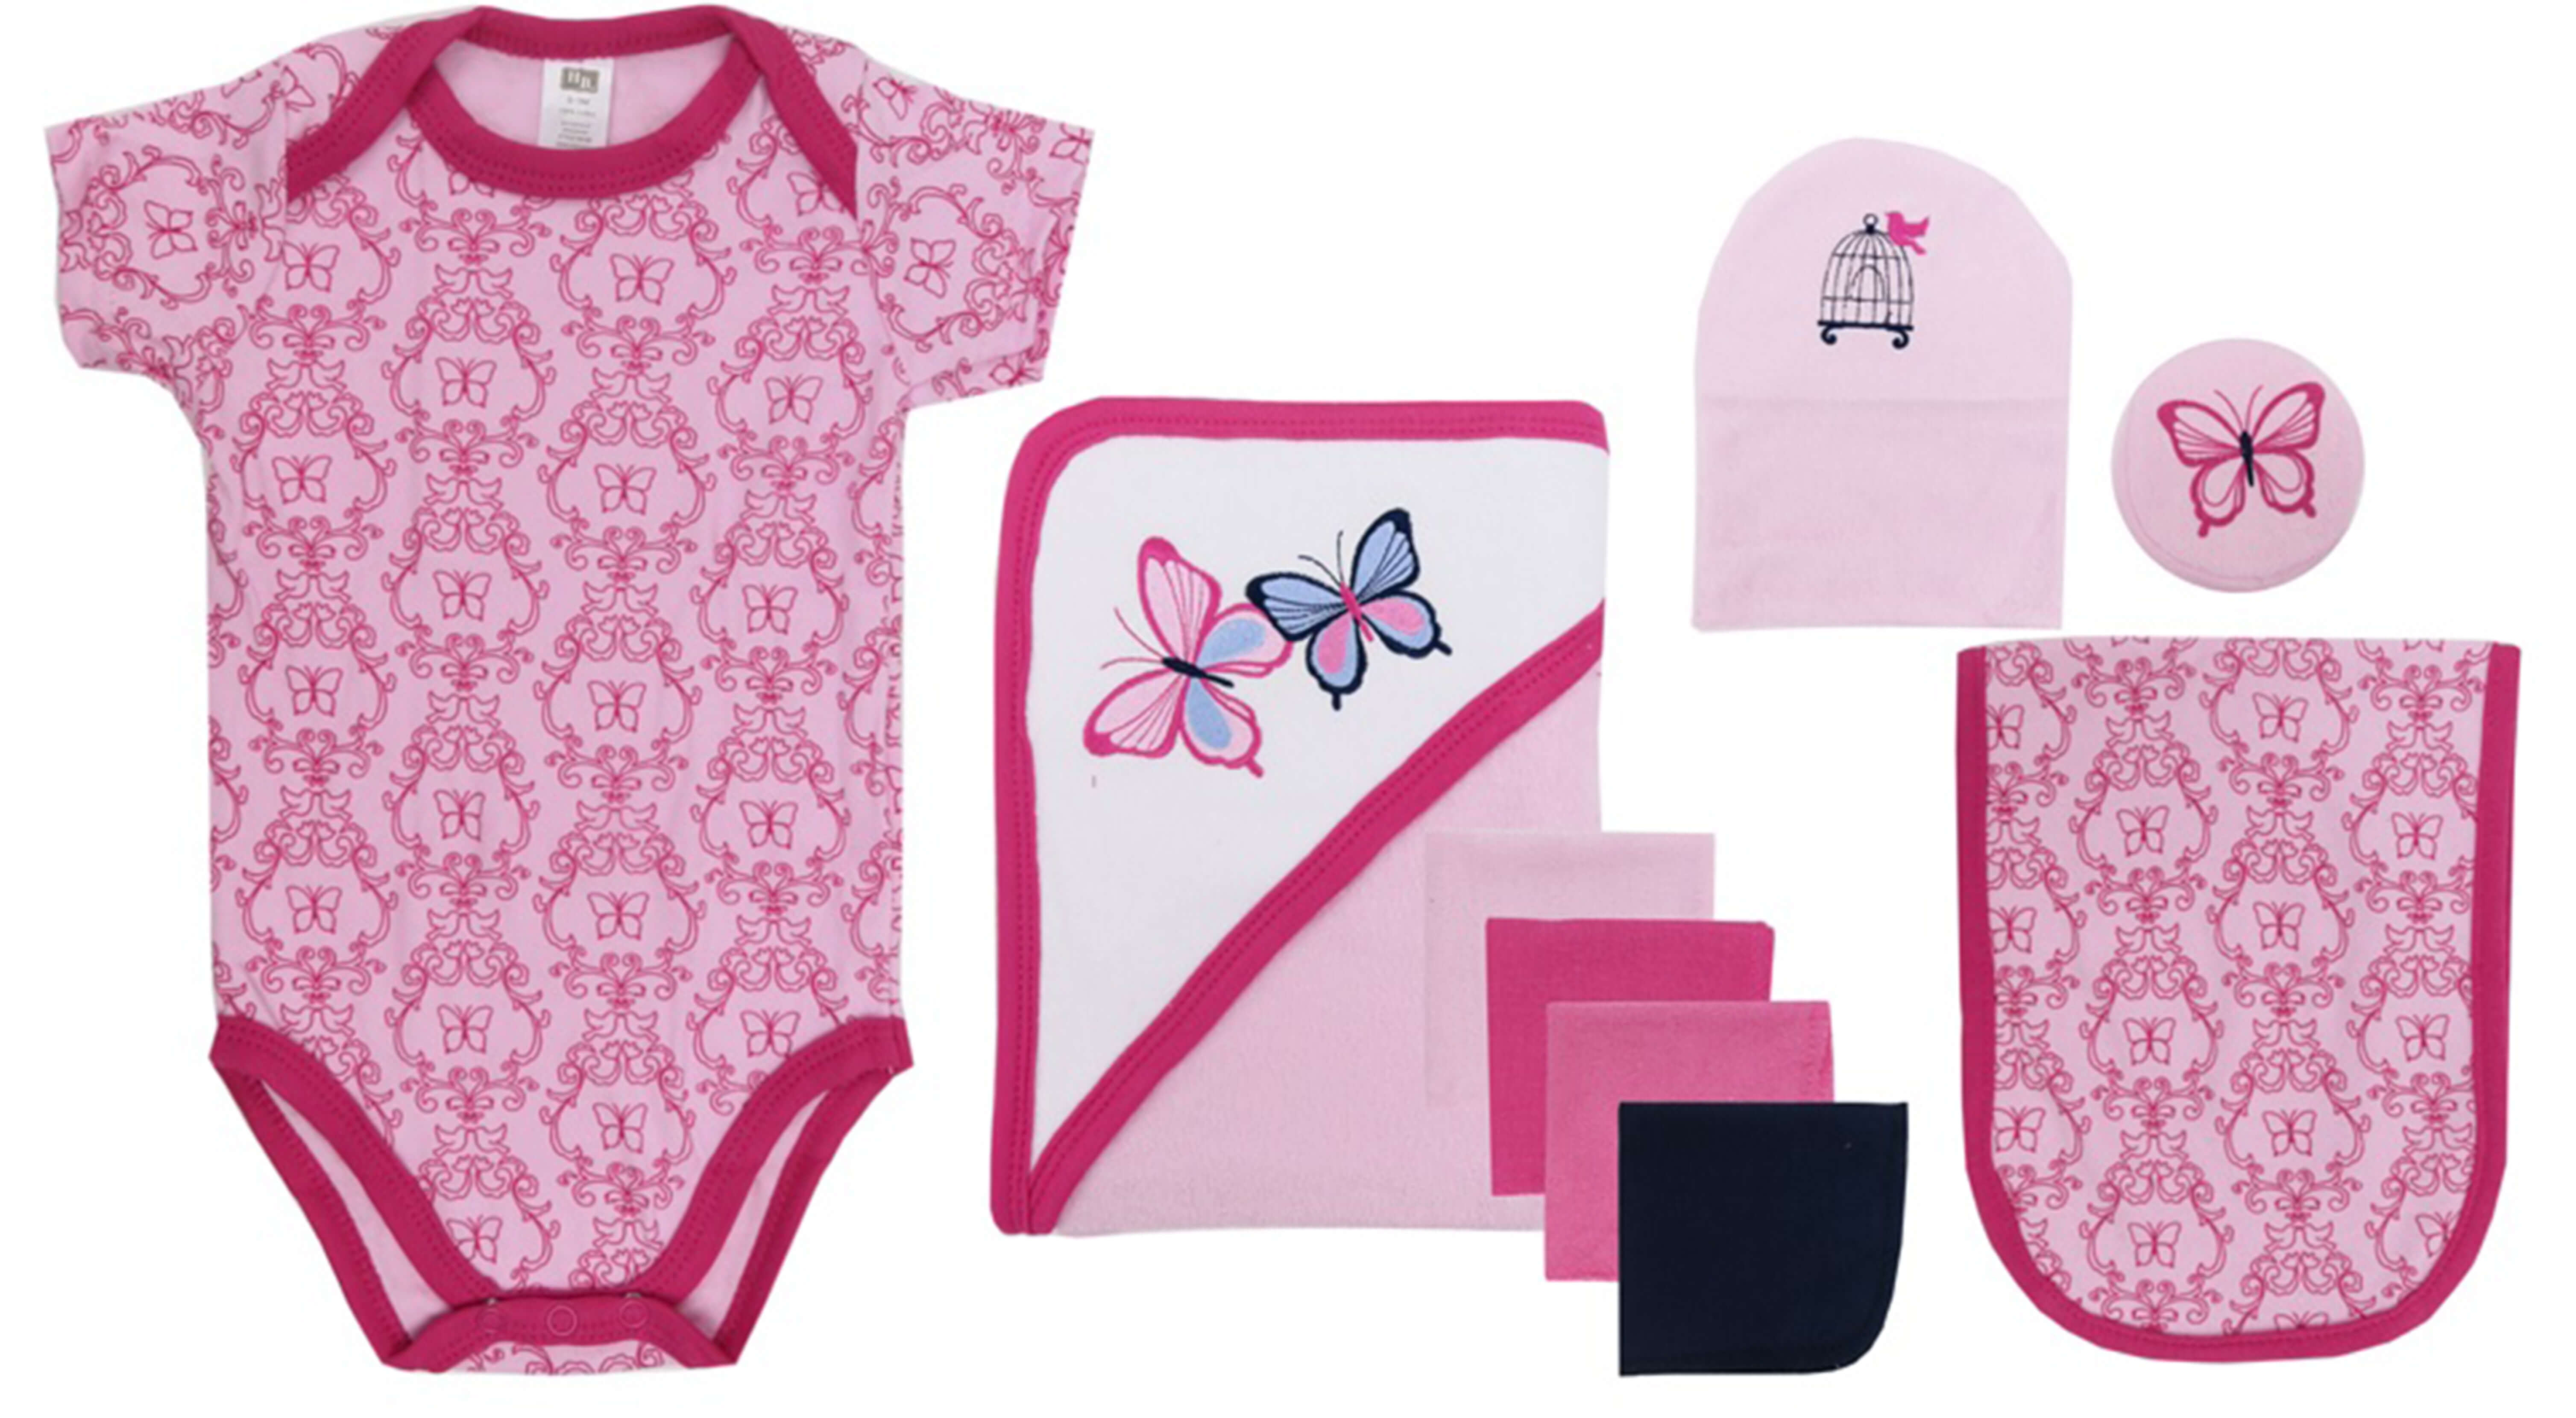 Baby Bath Time Gift Box Set Pink Butterfly